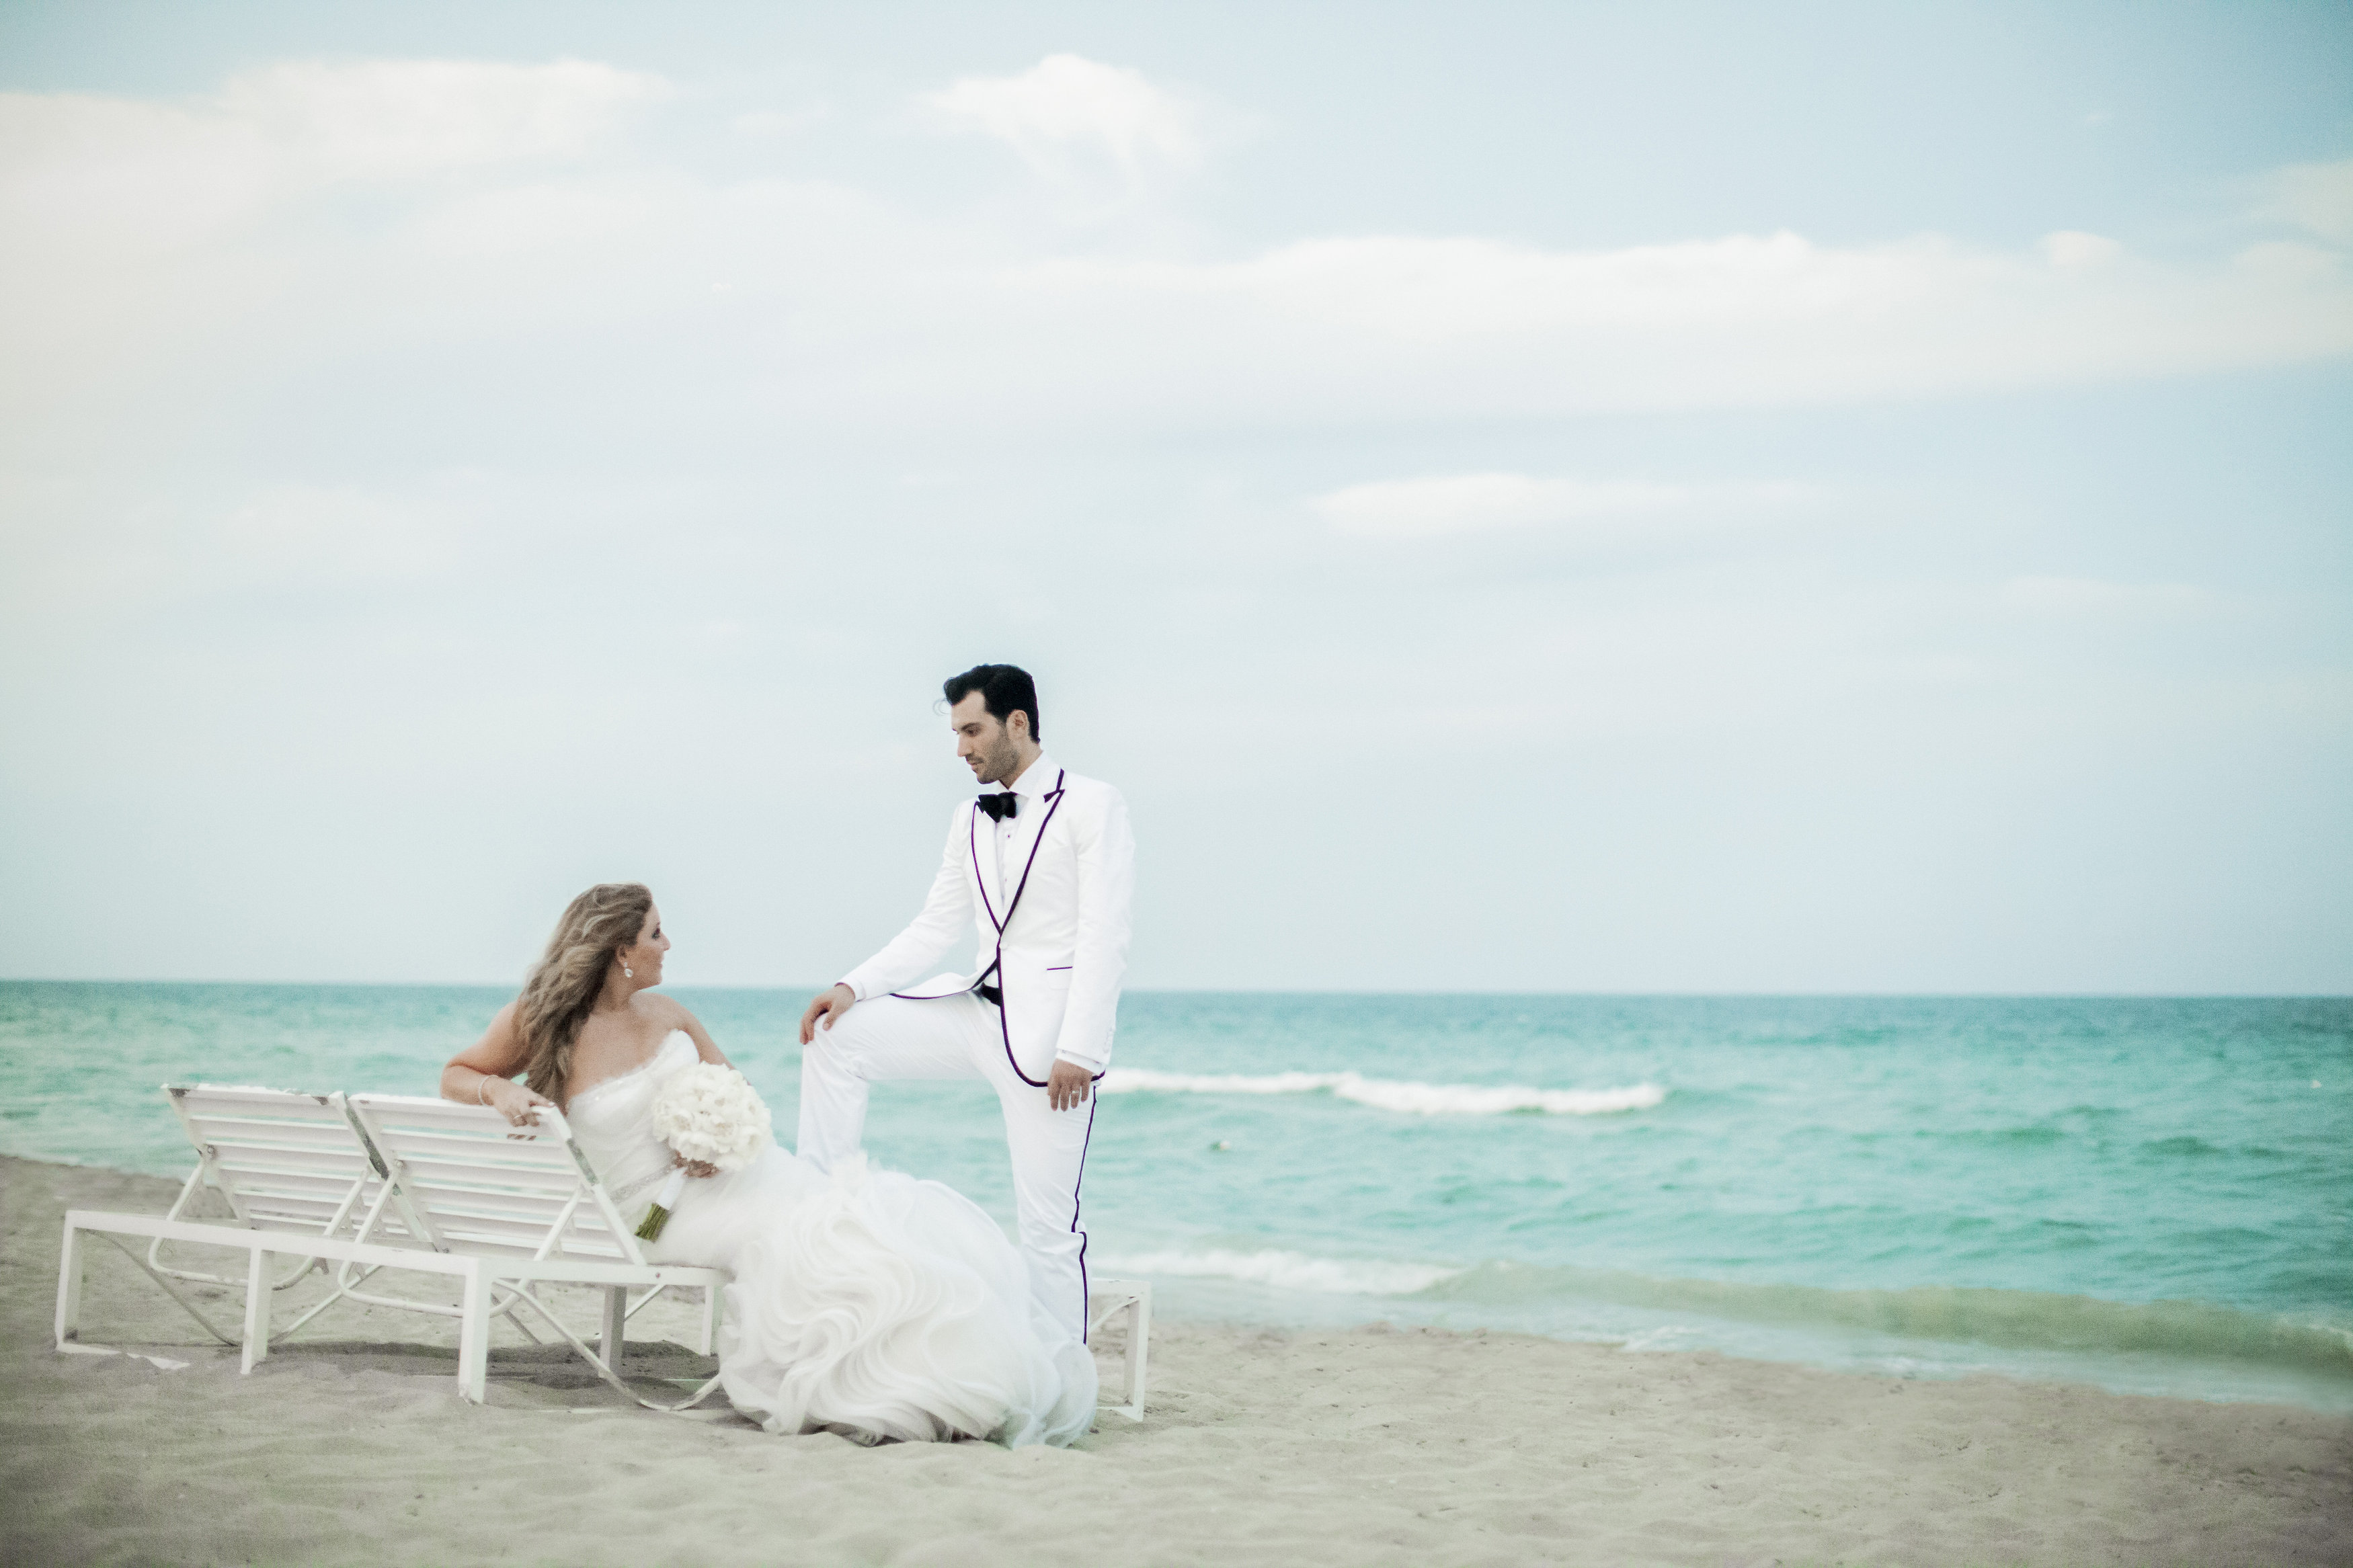 Ocean Monochrome: Miami Beach Wedding - Chris Weinberg Events